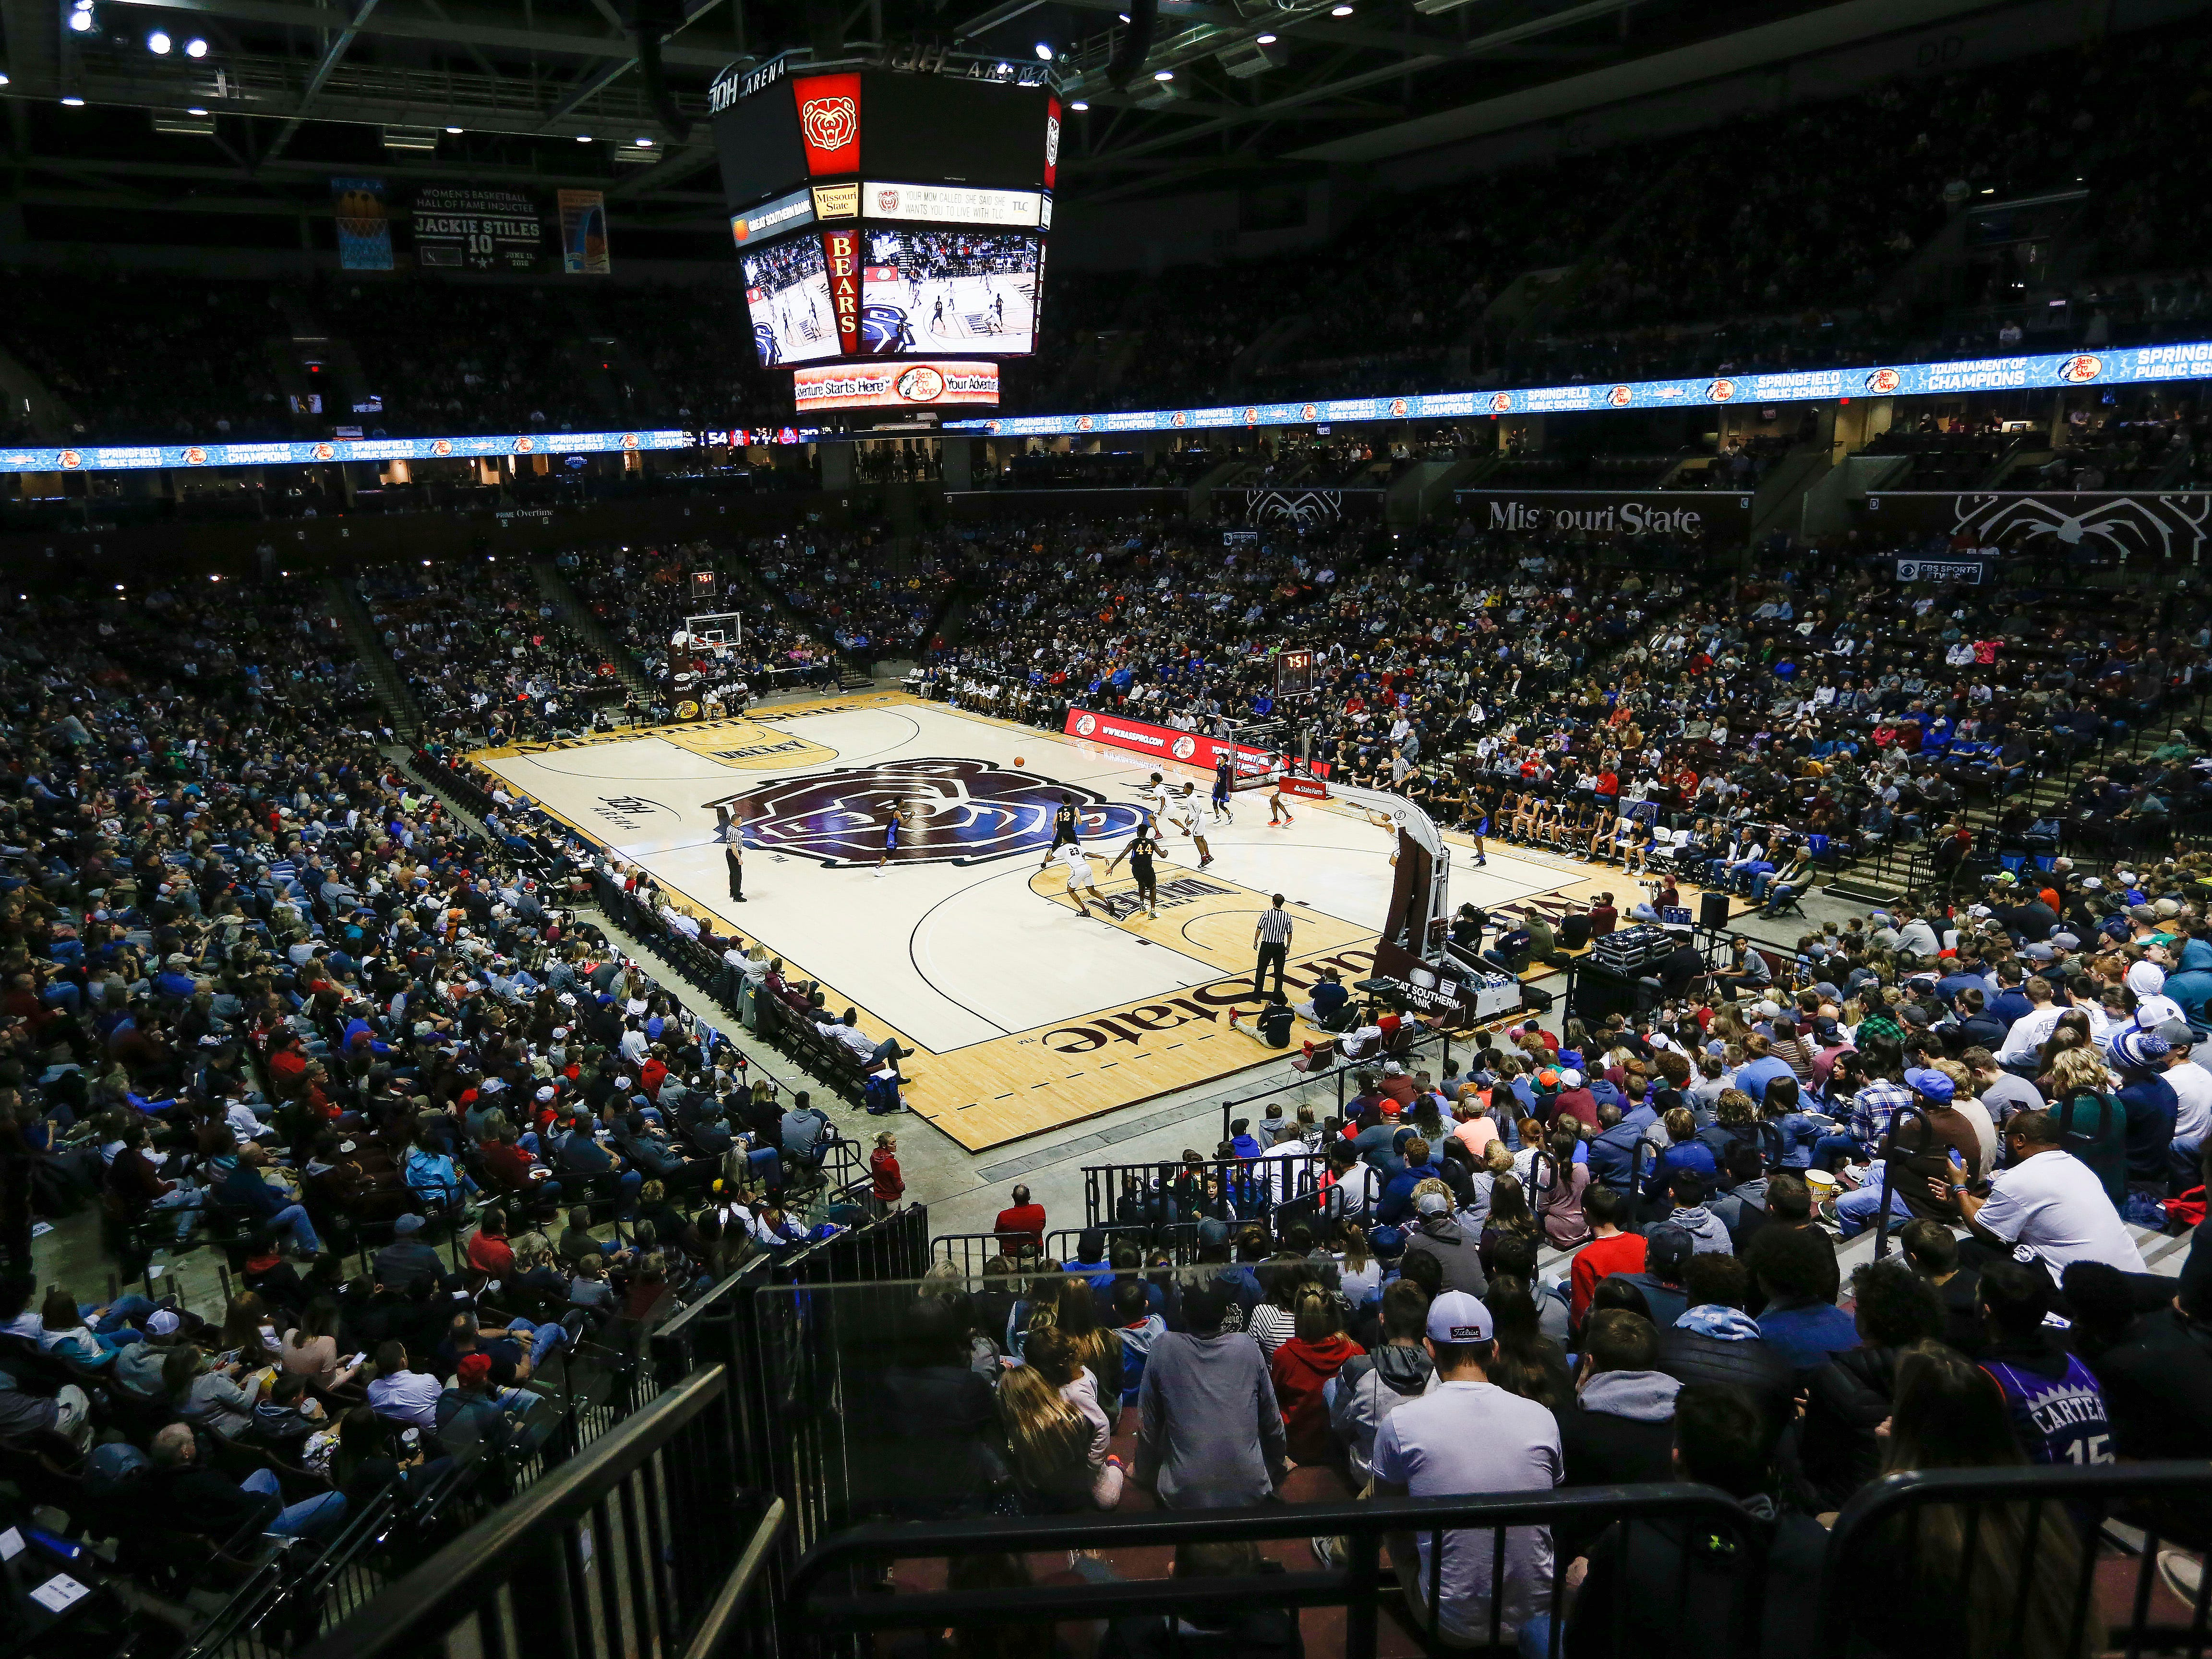 JQH Arena was packed for the Bass Pro Shops Tournament of Champions on Saturday, Jan. 19, 2019.